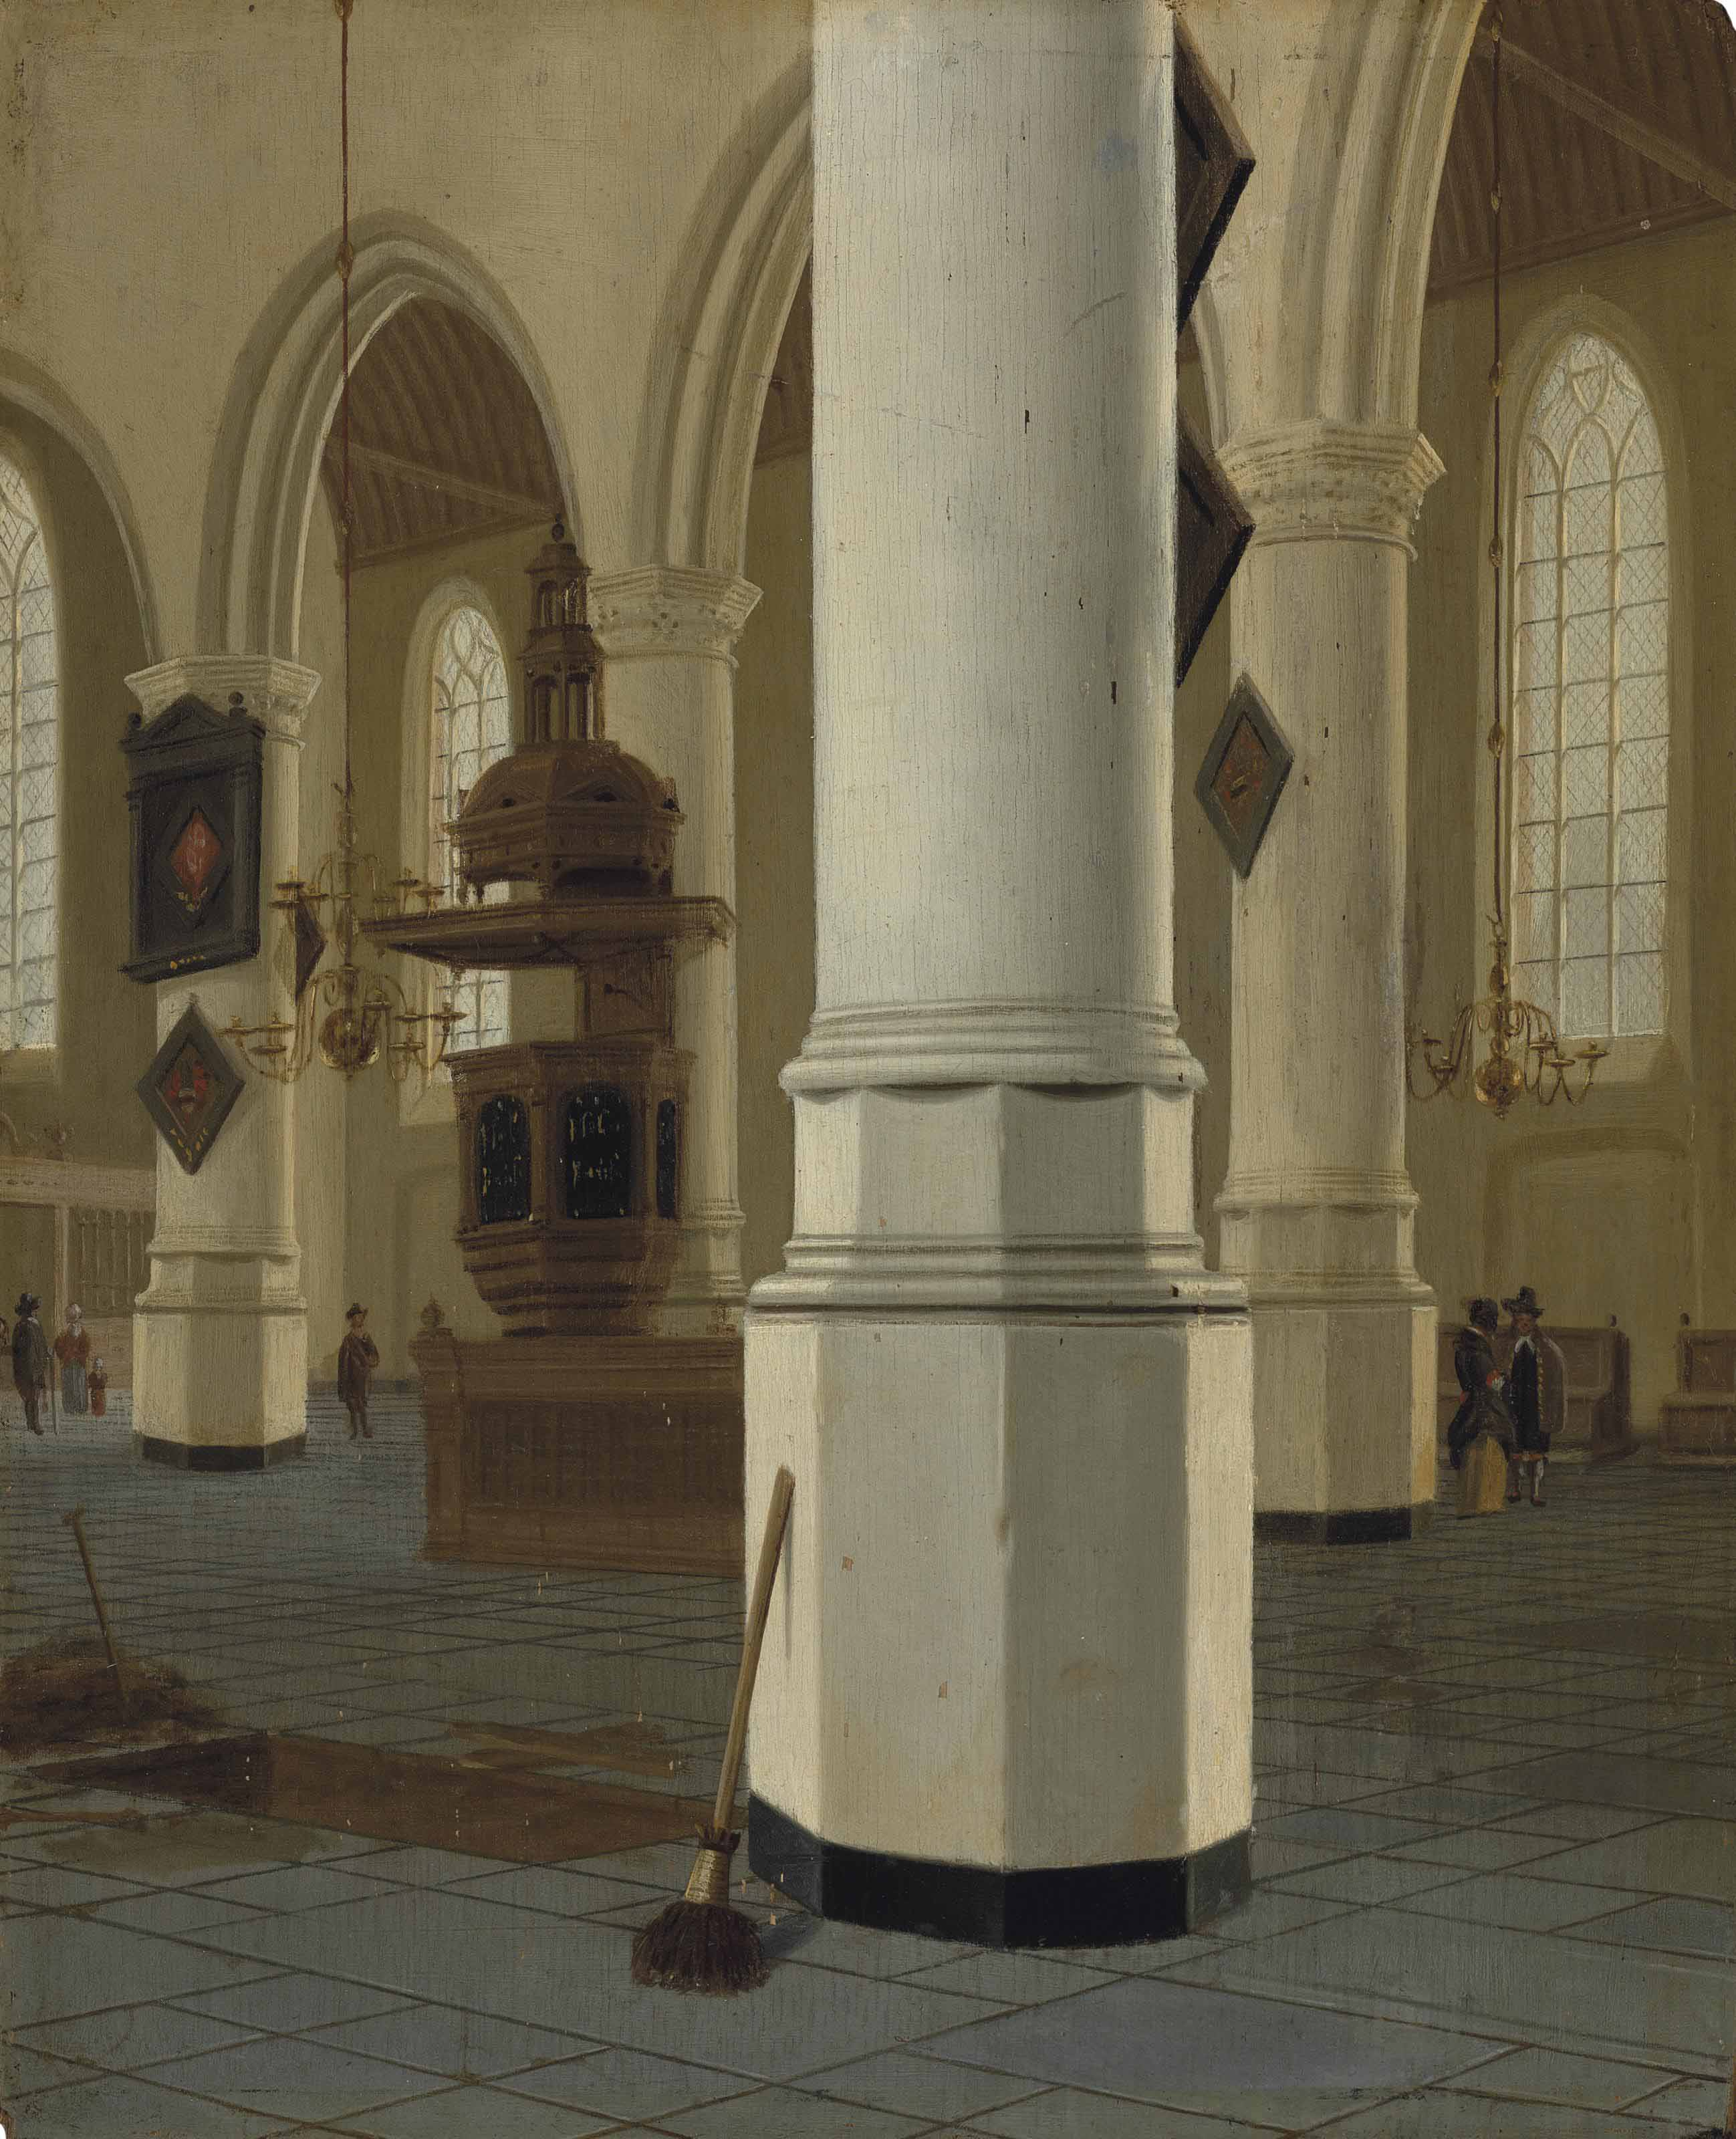 Interior of the Oude Kerk, Delft, seen from the northern aisle, looking to the southeast